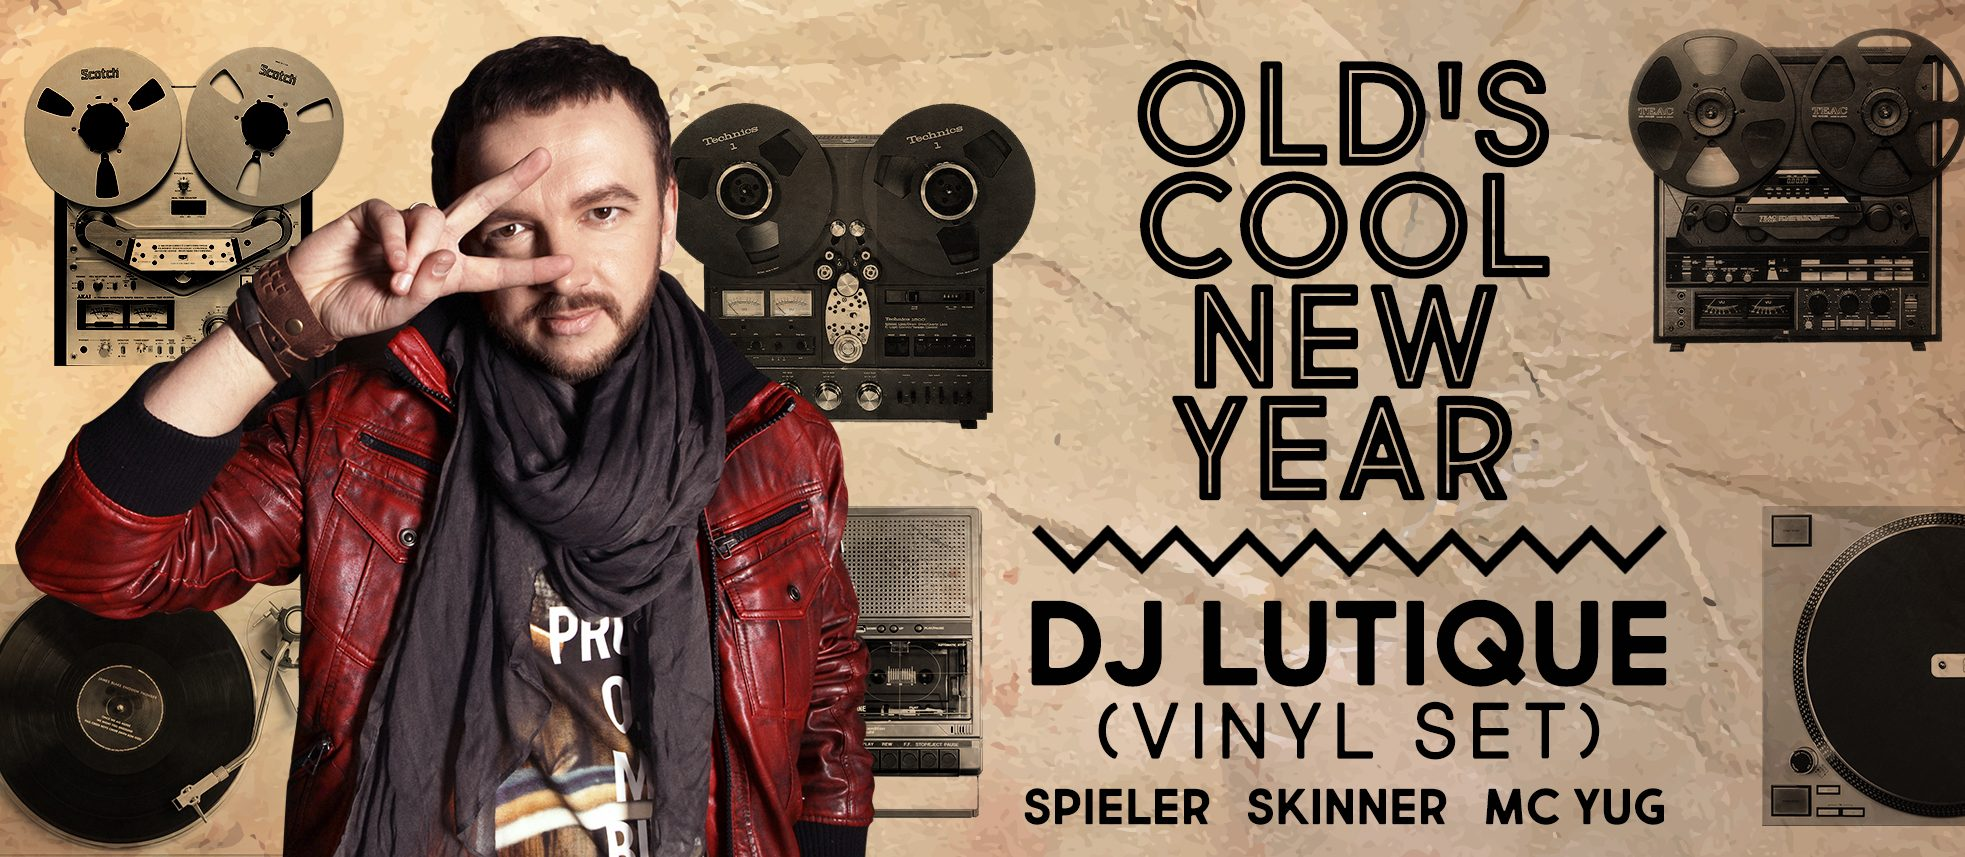 Old's Cool New Year! Dj Lutique (vinyl set)